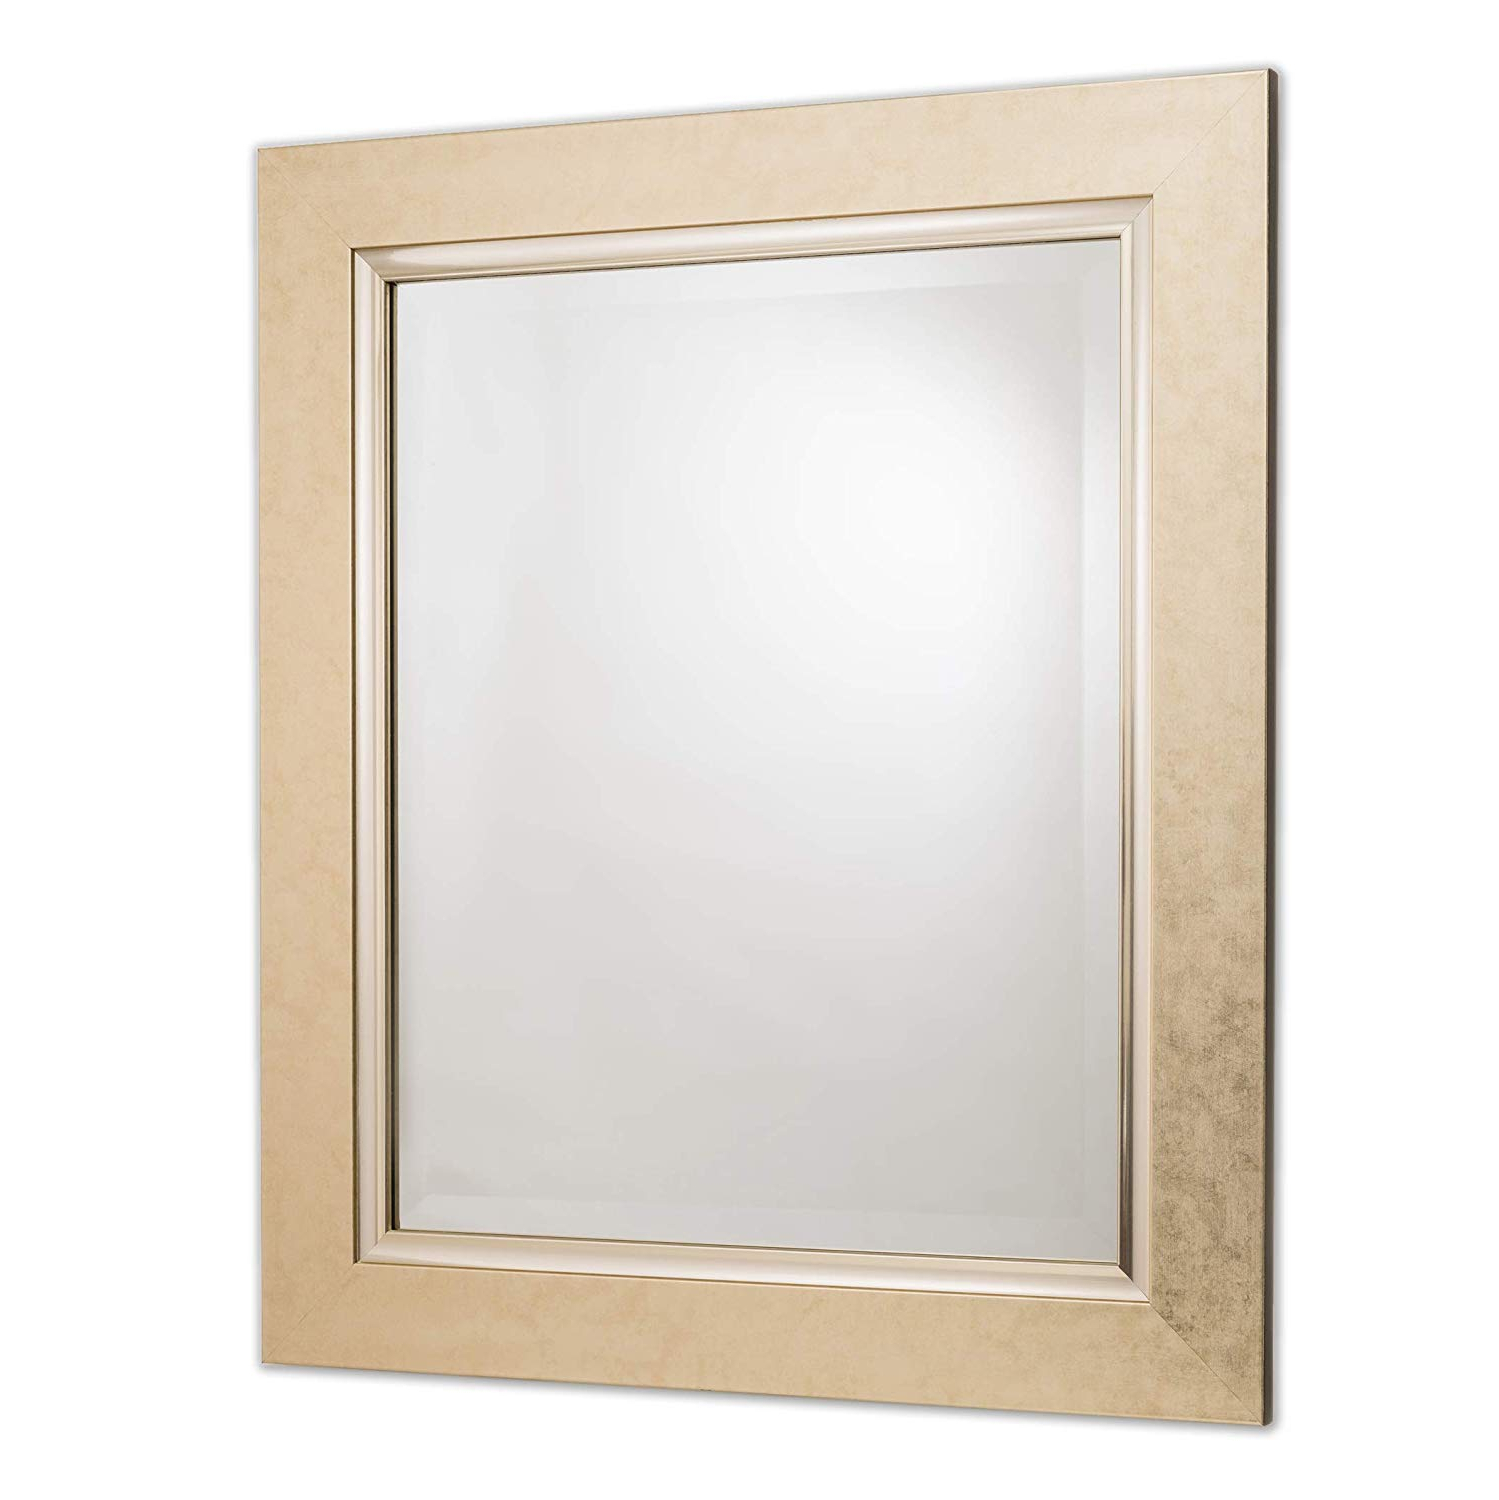 "Most Up To Date Wall Mirror Decorative Vanity – Bathroom Rectangular Vintage Gold Beveled  Frame 22""x28"" In Frames For Bathroom Wall Mirrors (View 15 of 20)"